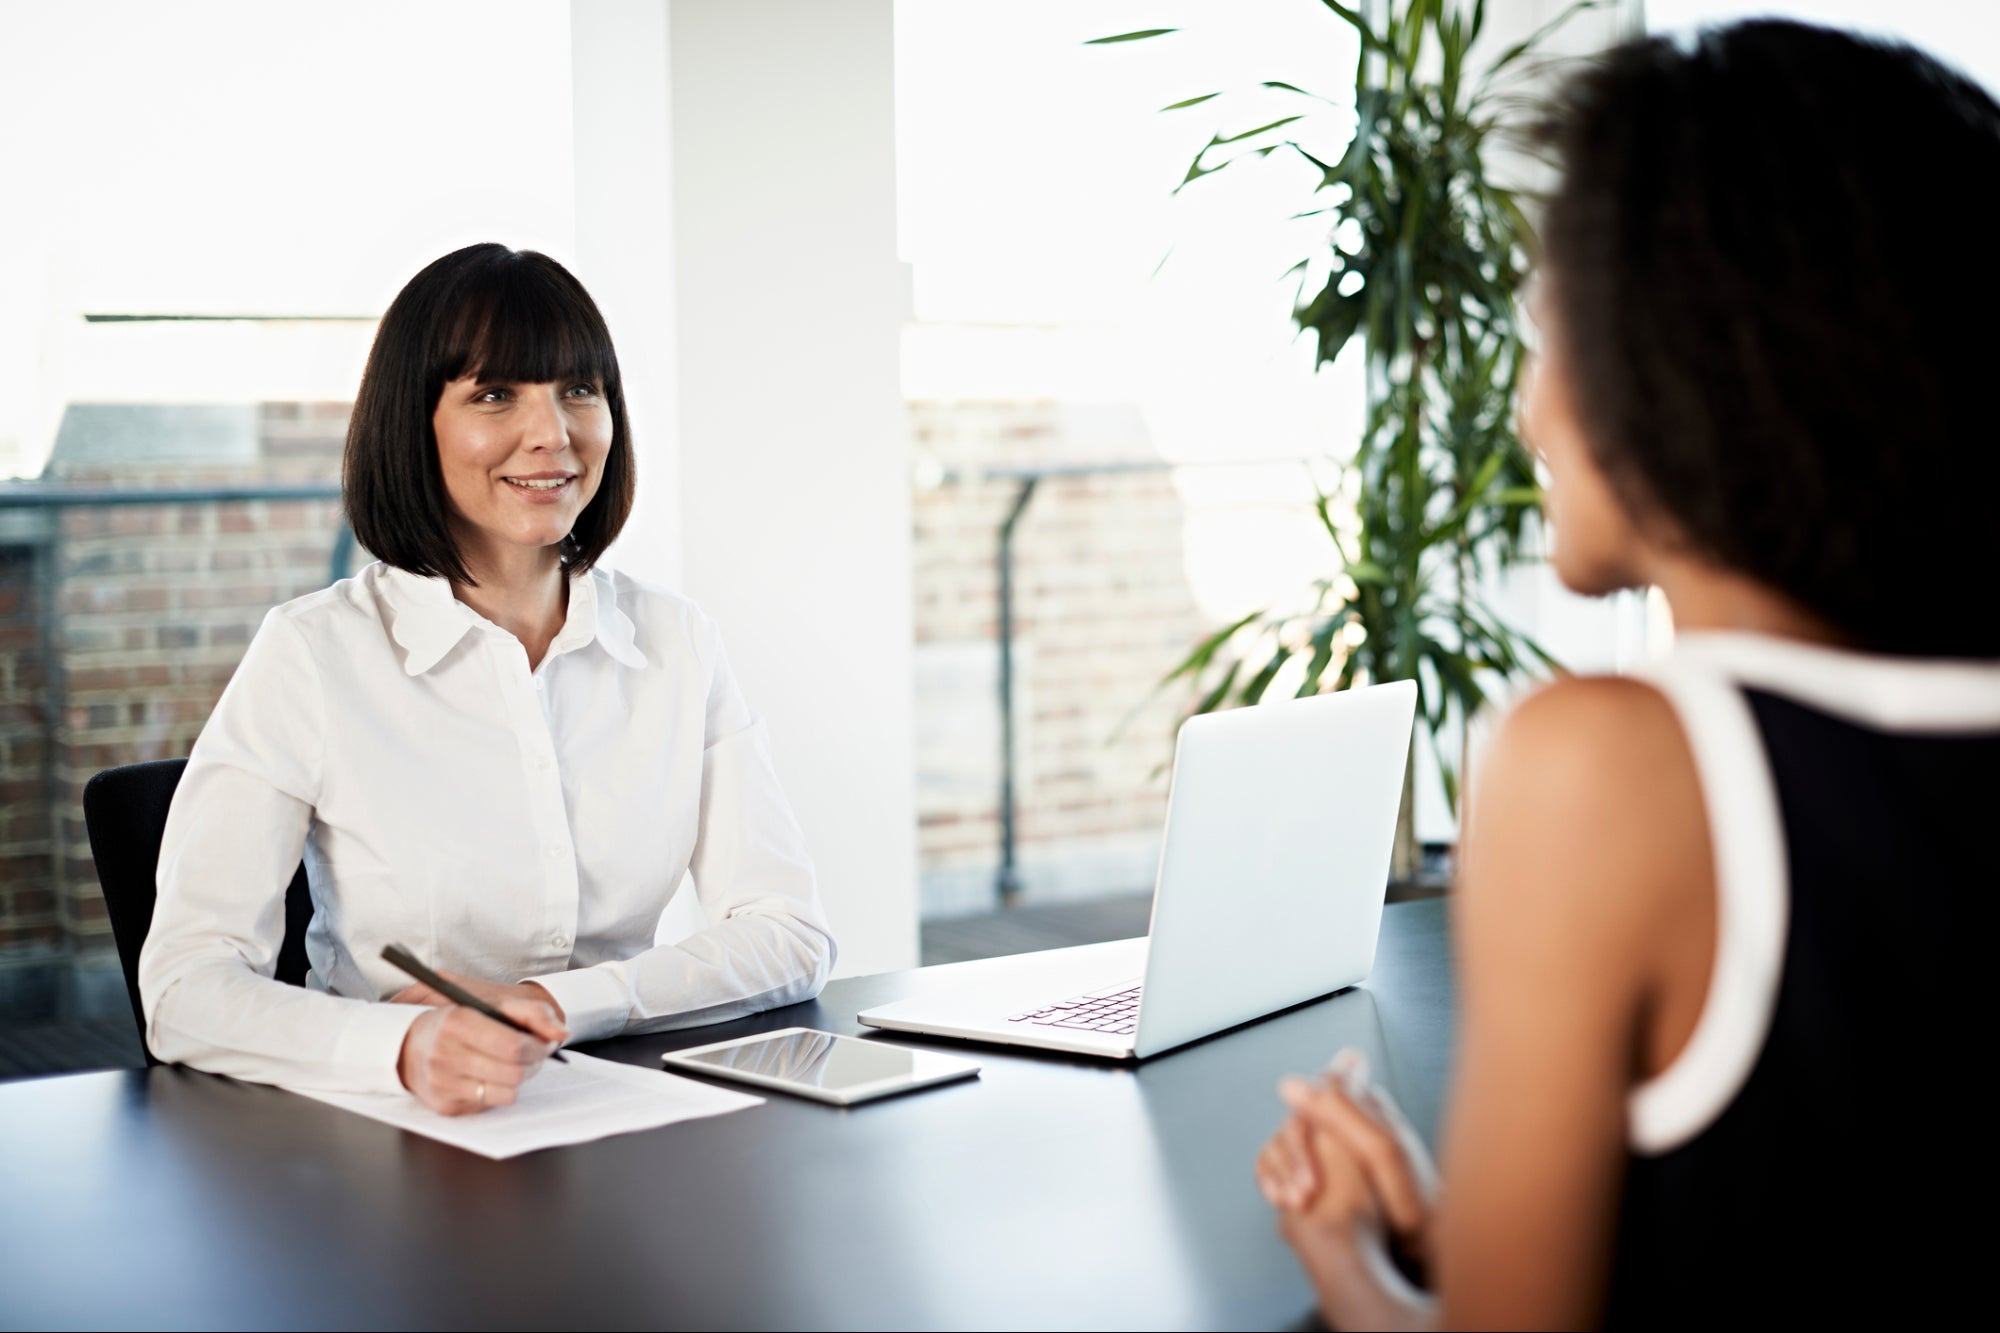 5 Things You Must Do to Nail Your First Strategic HR Hire